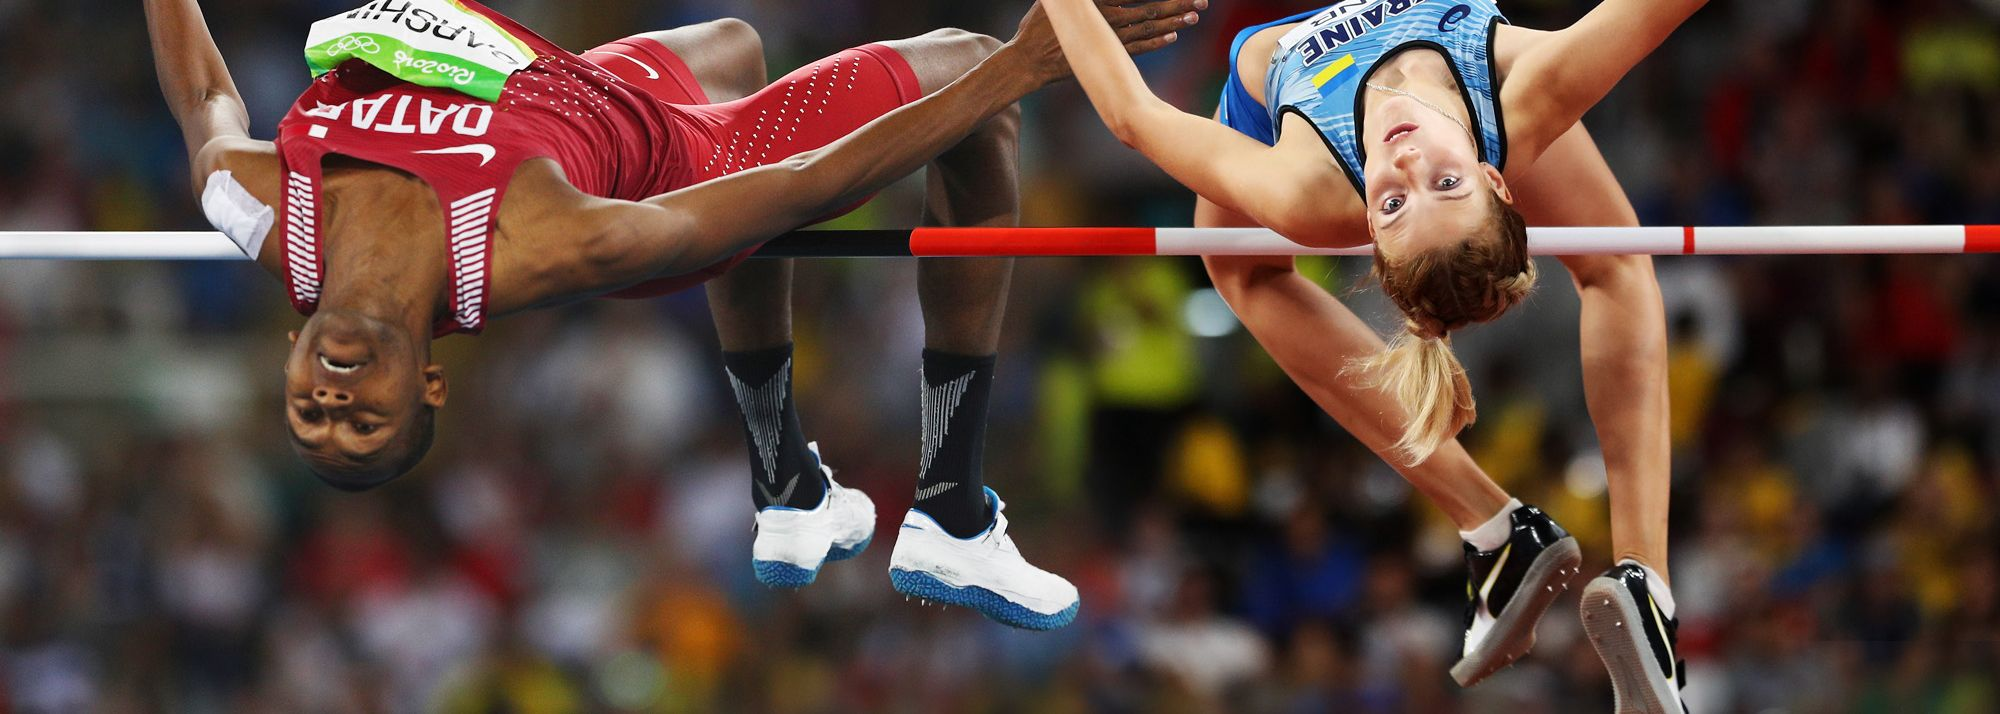 Expected highlights in the men's and women's high jump.